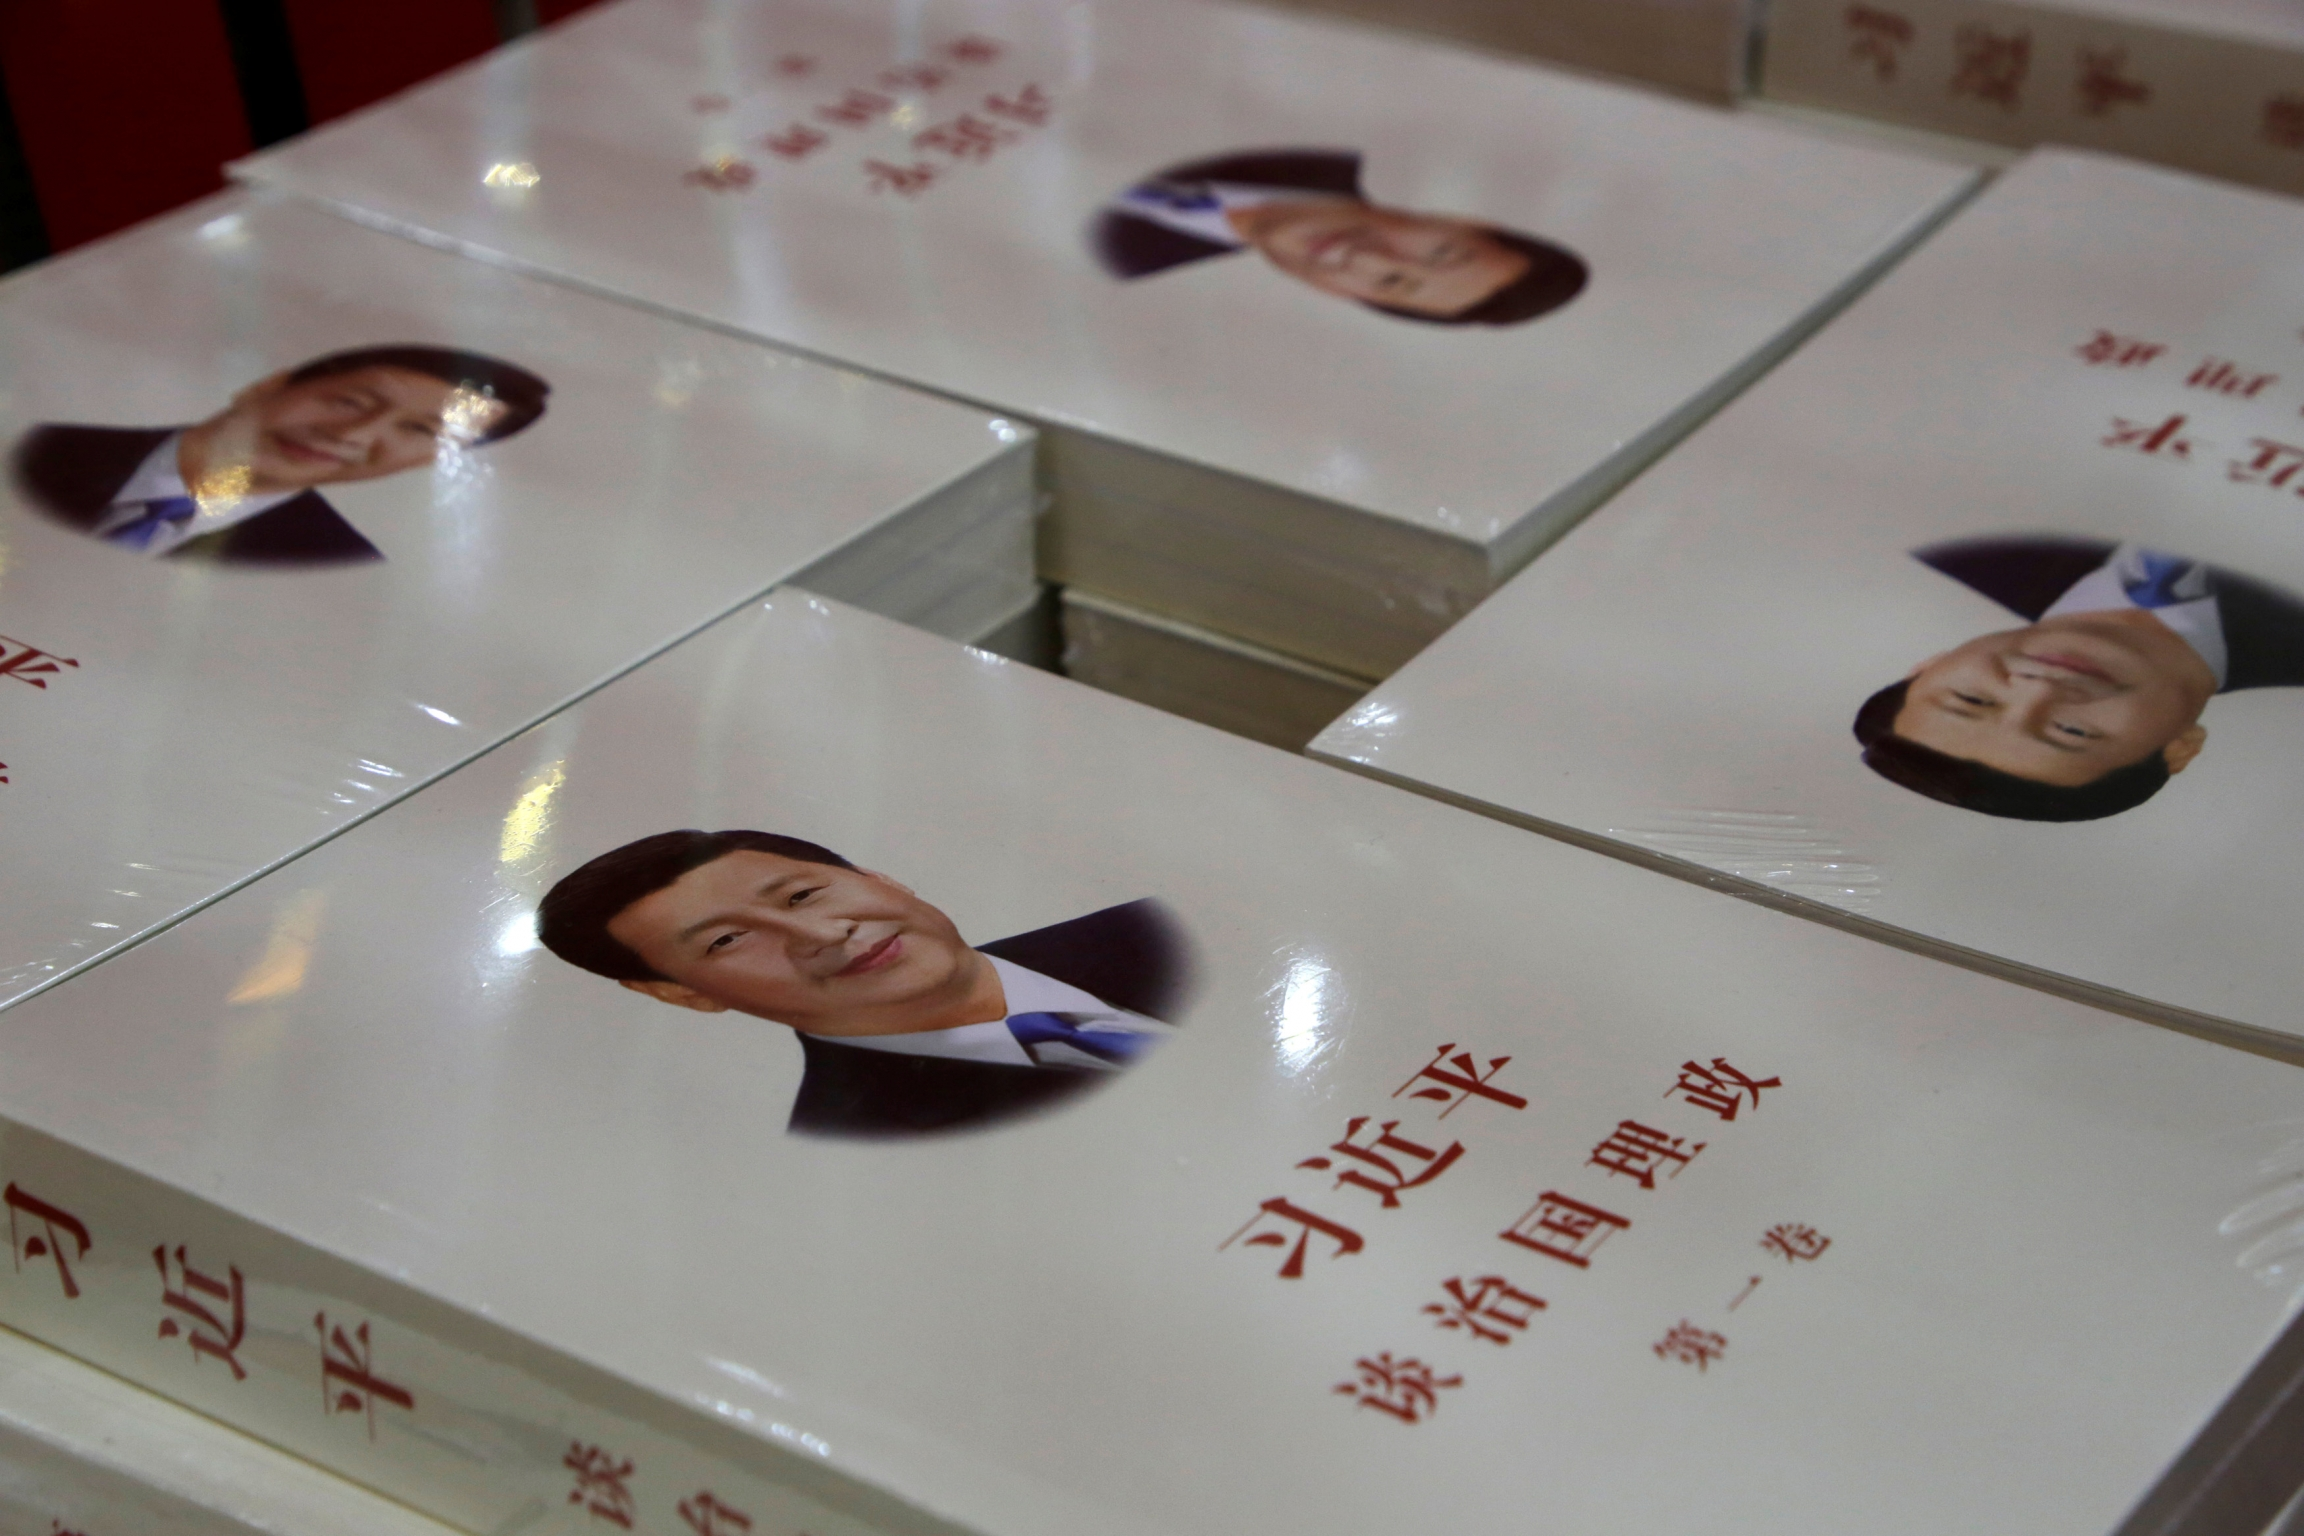 Copy of books with president's face